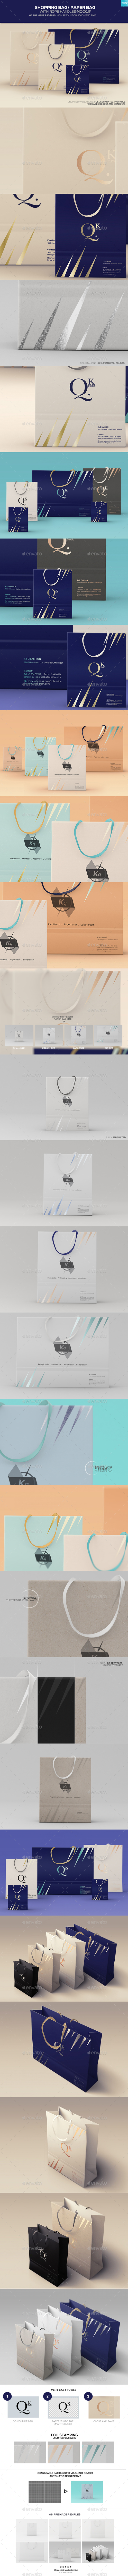 Shopping Bag/ Paper Bag With Rope Handles Mockups - Miscellaneous Packaging